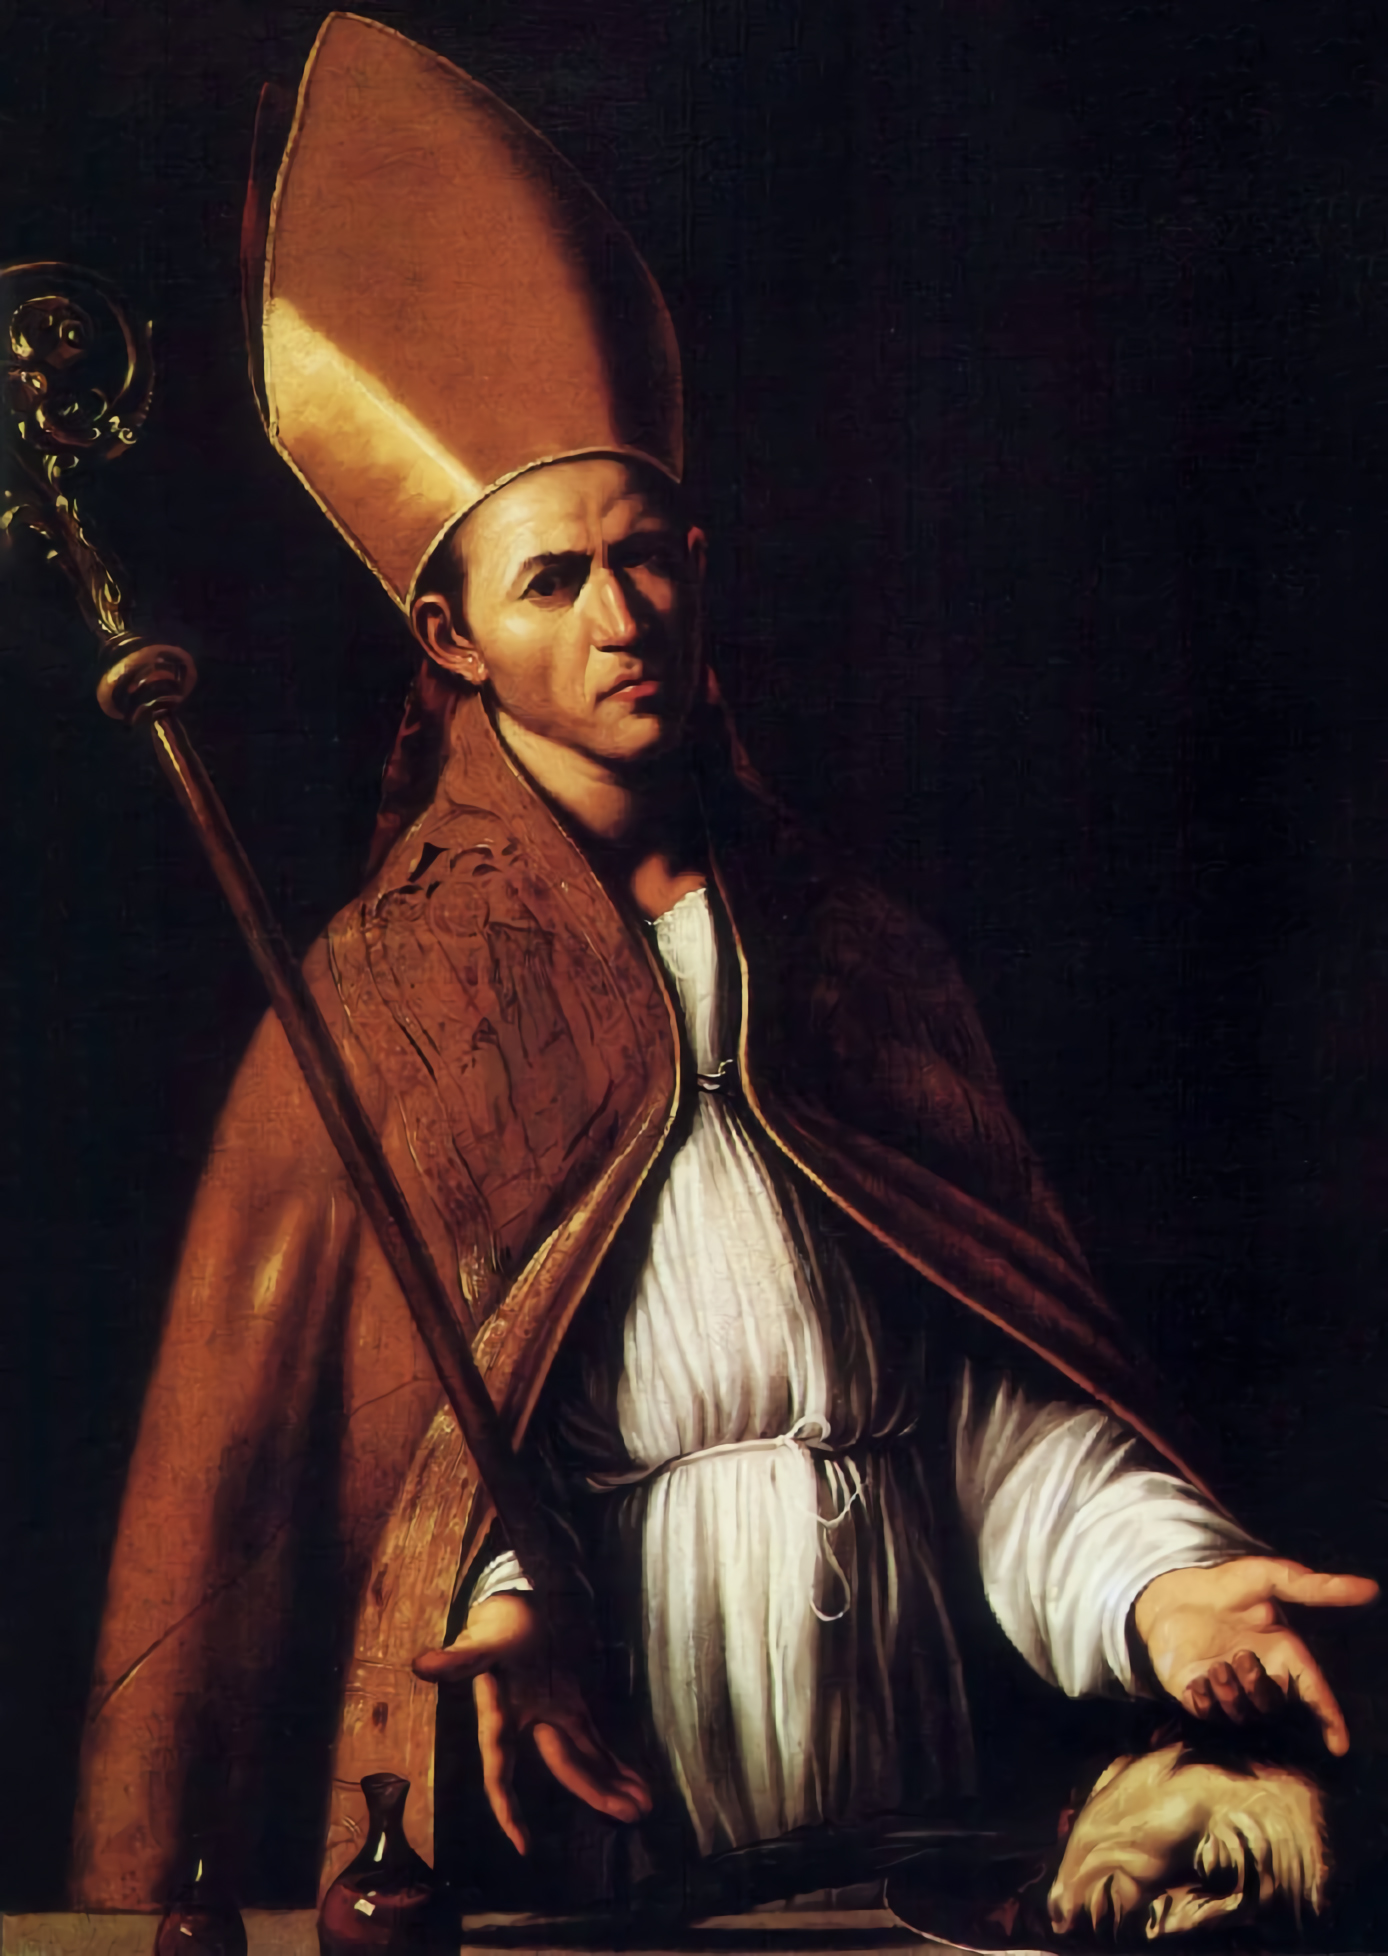 IMG ST. JANUARIUS, Bishop of Benevento, Italy